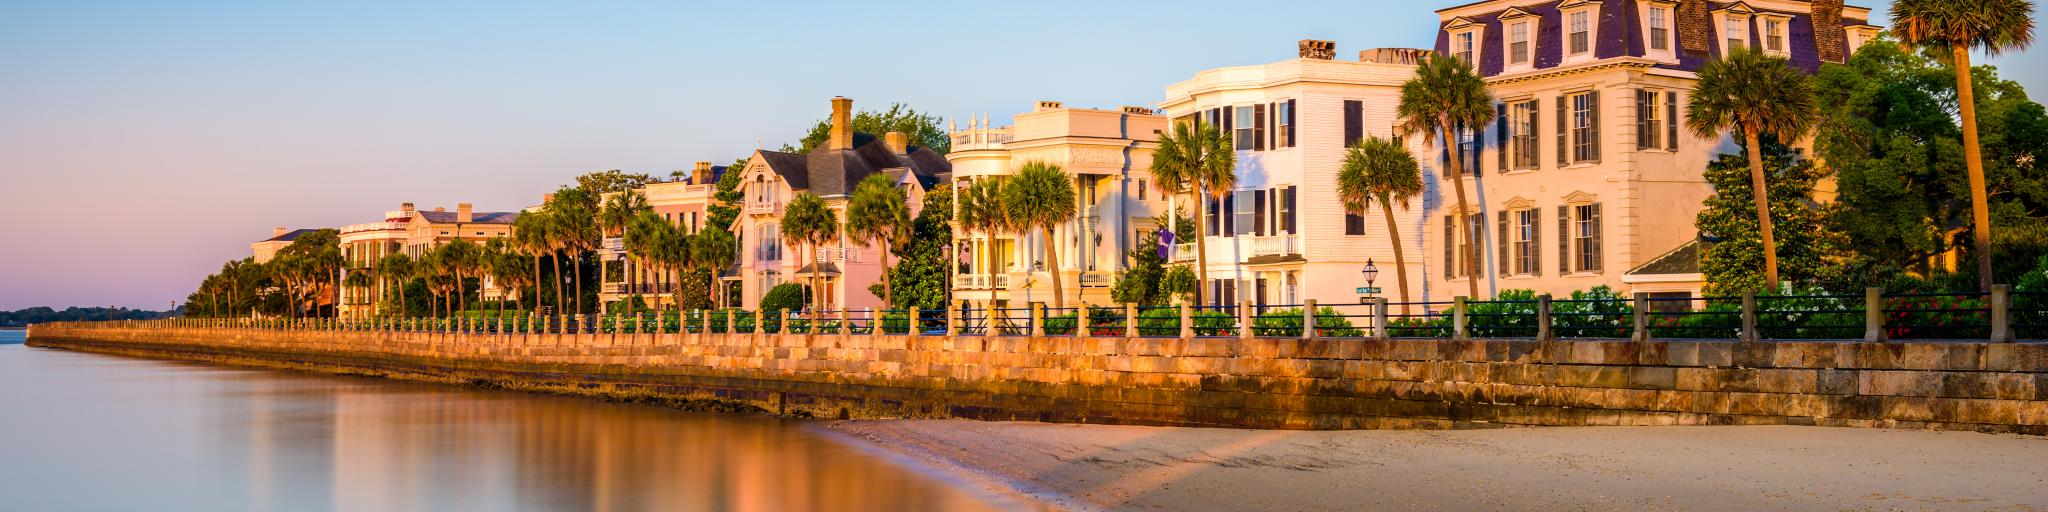 The historic homes near the sea, the Battery in Charleston with beautiful landscape and trees in a clear blue sky morning, South Carolina